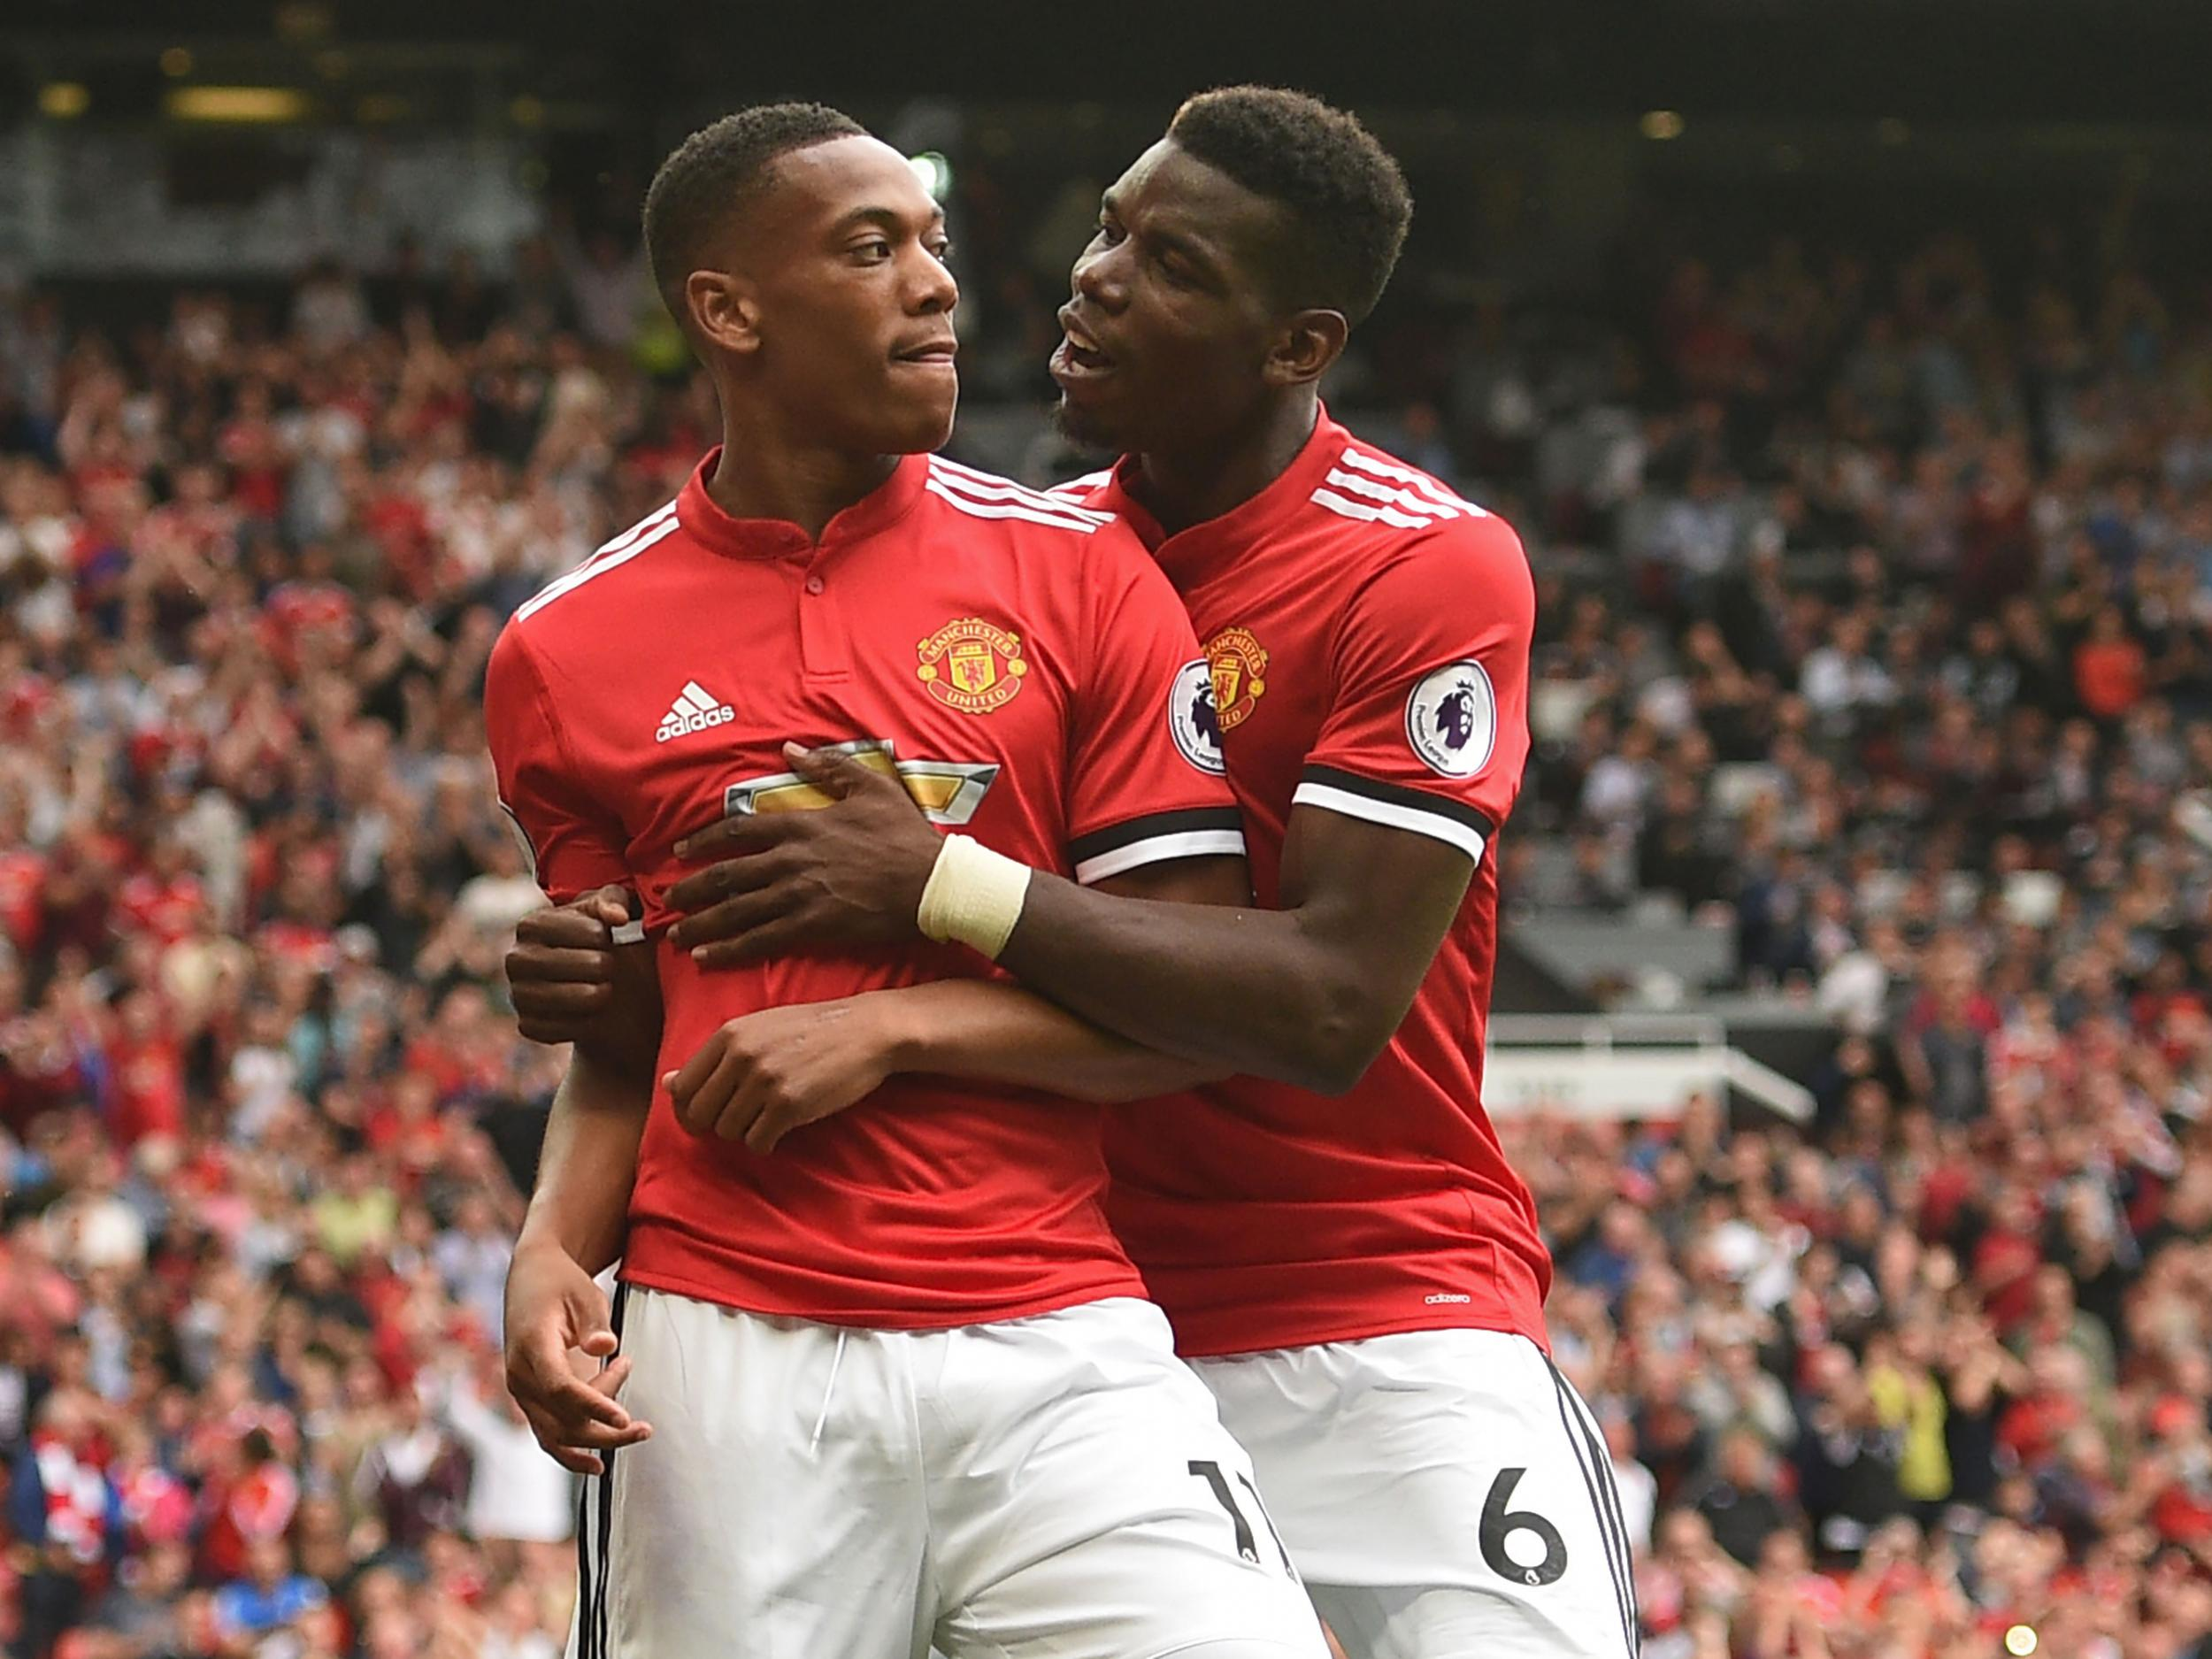 Manchester United forward Anthony Martial s future is safe at Old